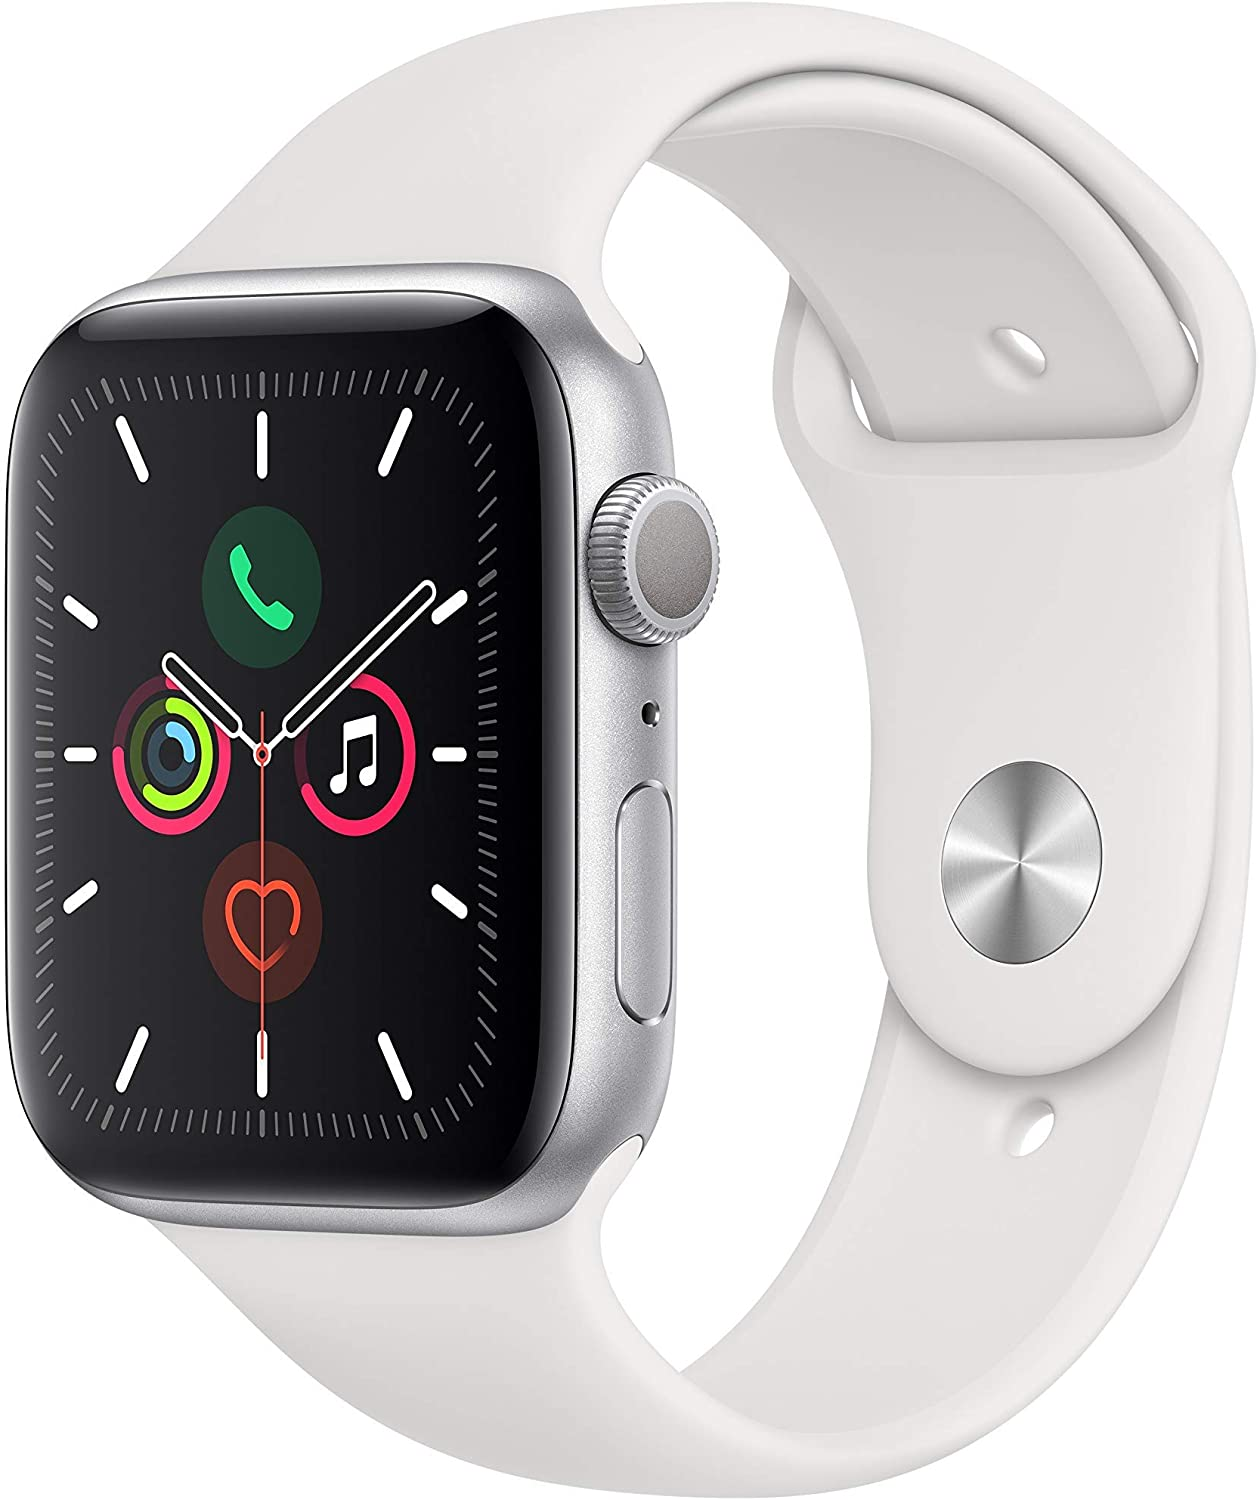 Apple Watch Series 5 (GPS, 40MM) - Silver Aluminum Case with White Sport Band (Renewed)